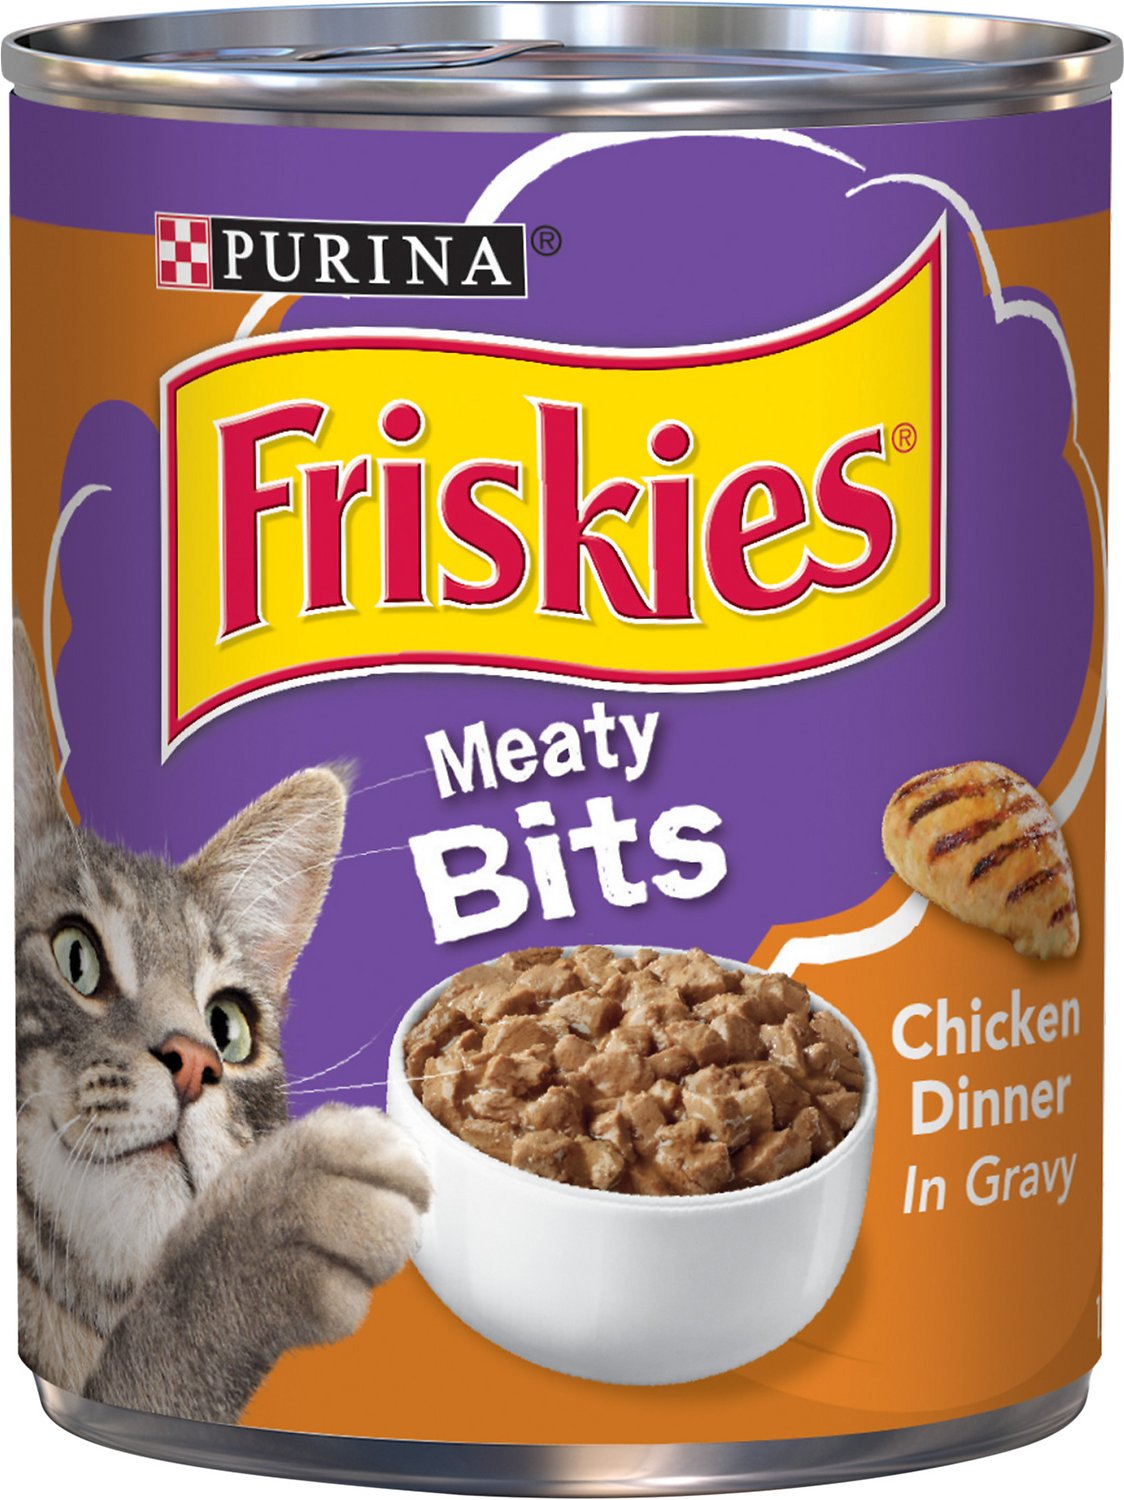 Friskies Meaty Bits Chicken Dinner In Gravy Canned Cat Food 13 Oz